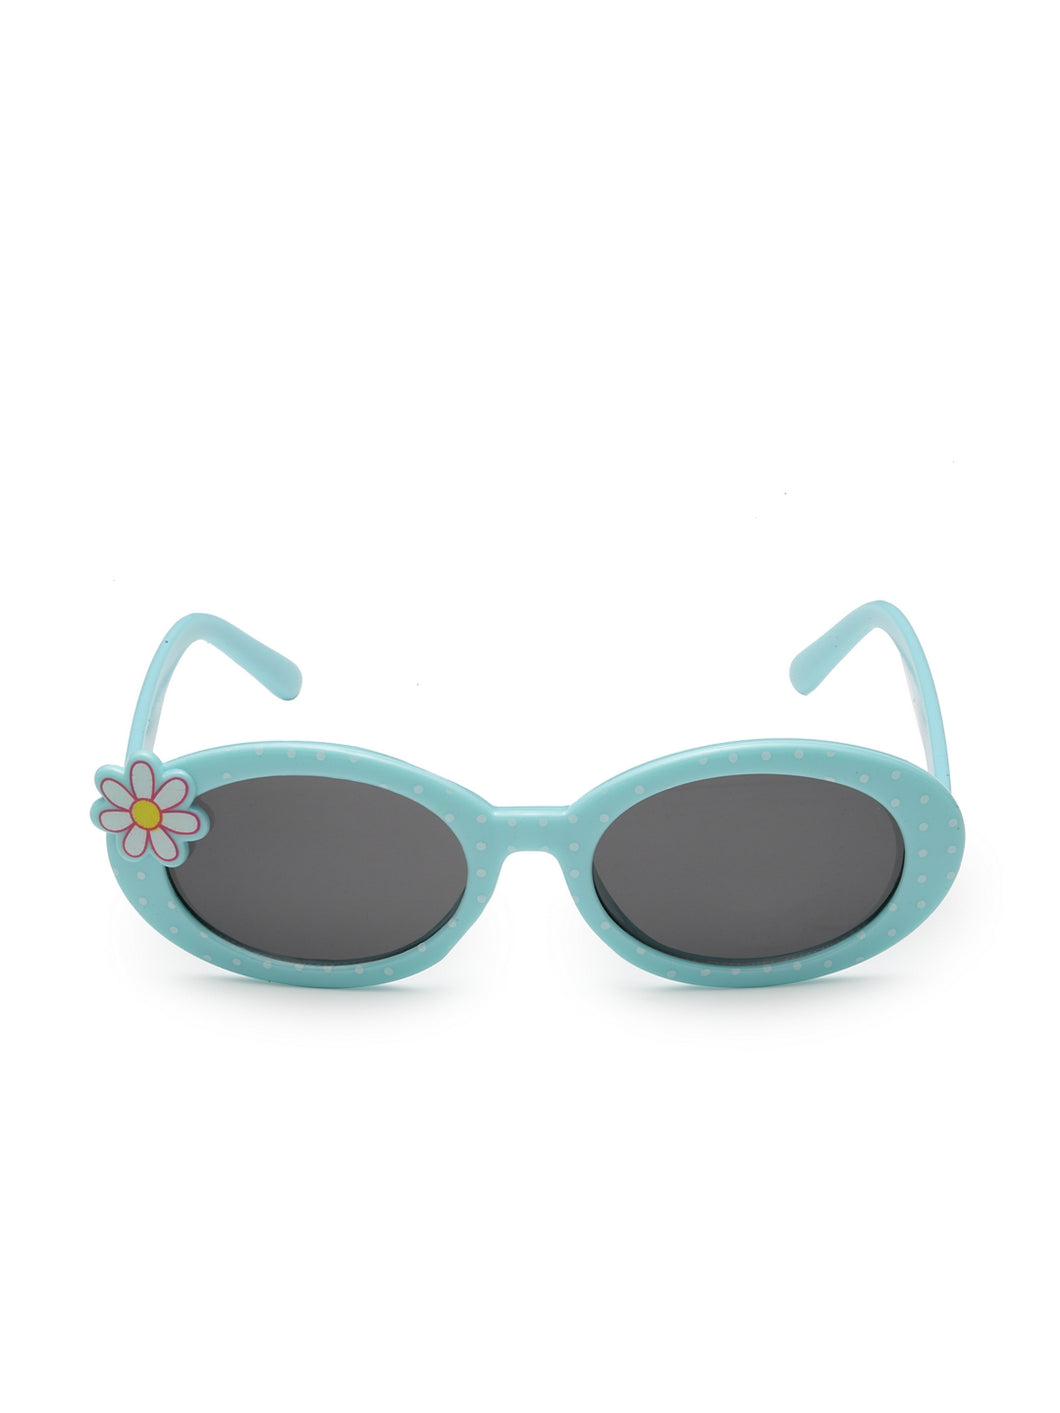 Stol'n Kids Yellow and Blue Bow Applique Rectangular Sunglasses Black and Green